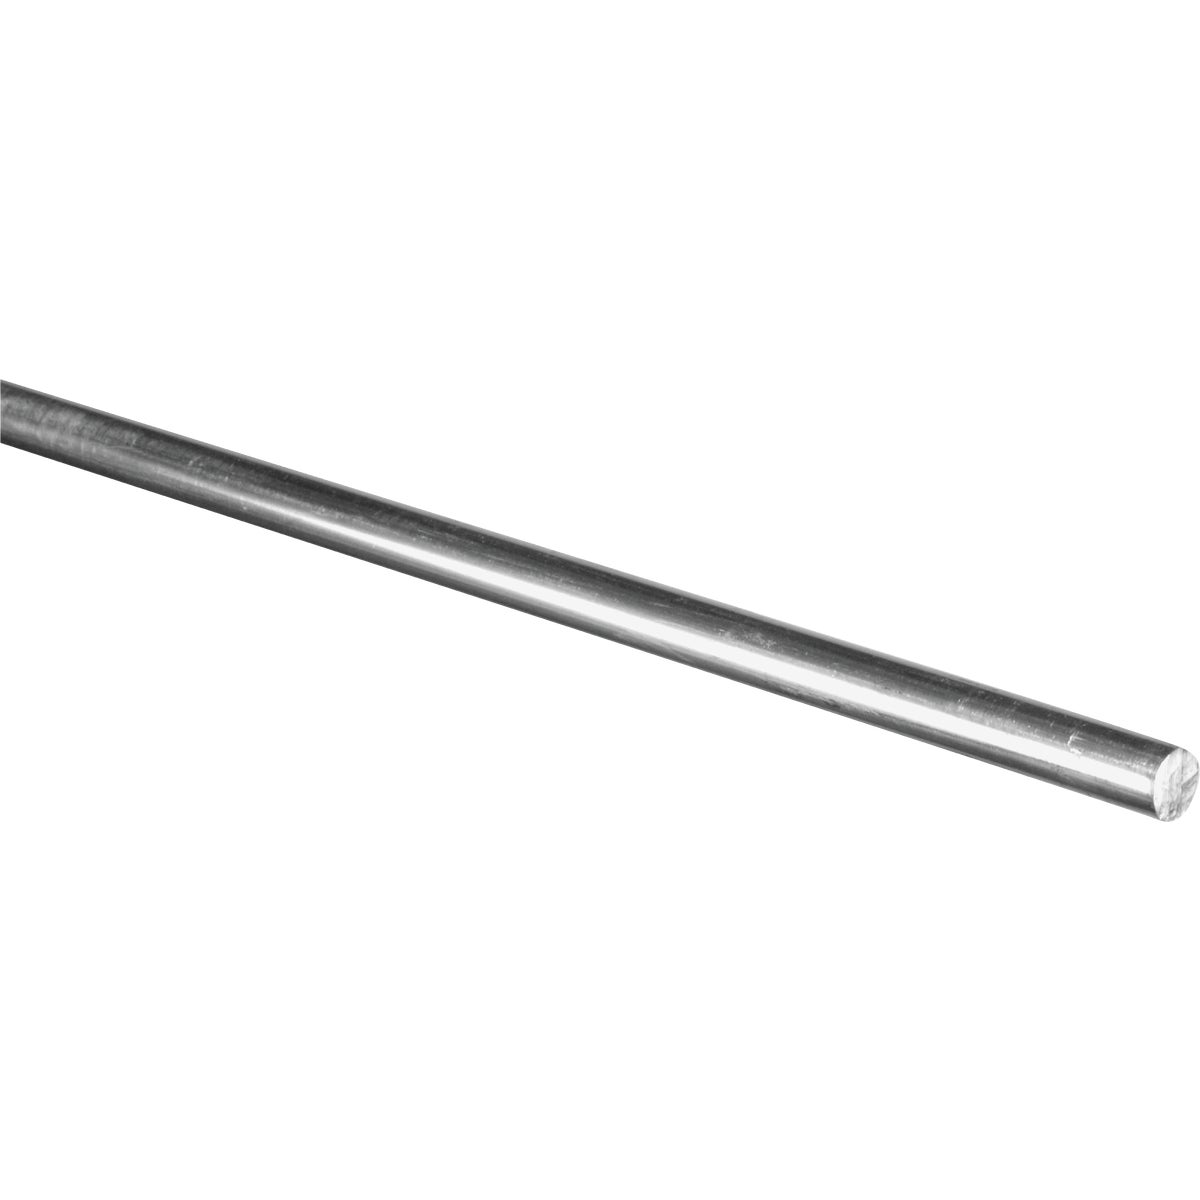 1/4X3' SOLID ROUND ROD - N342170 by National Mfg Co